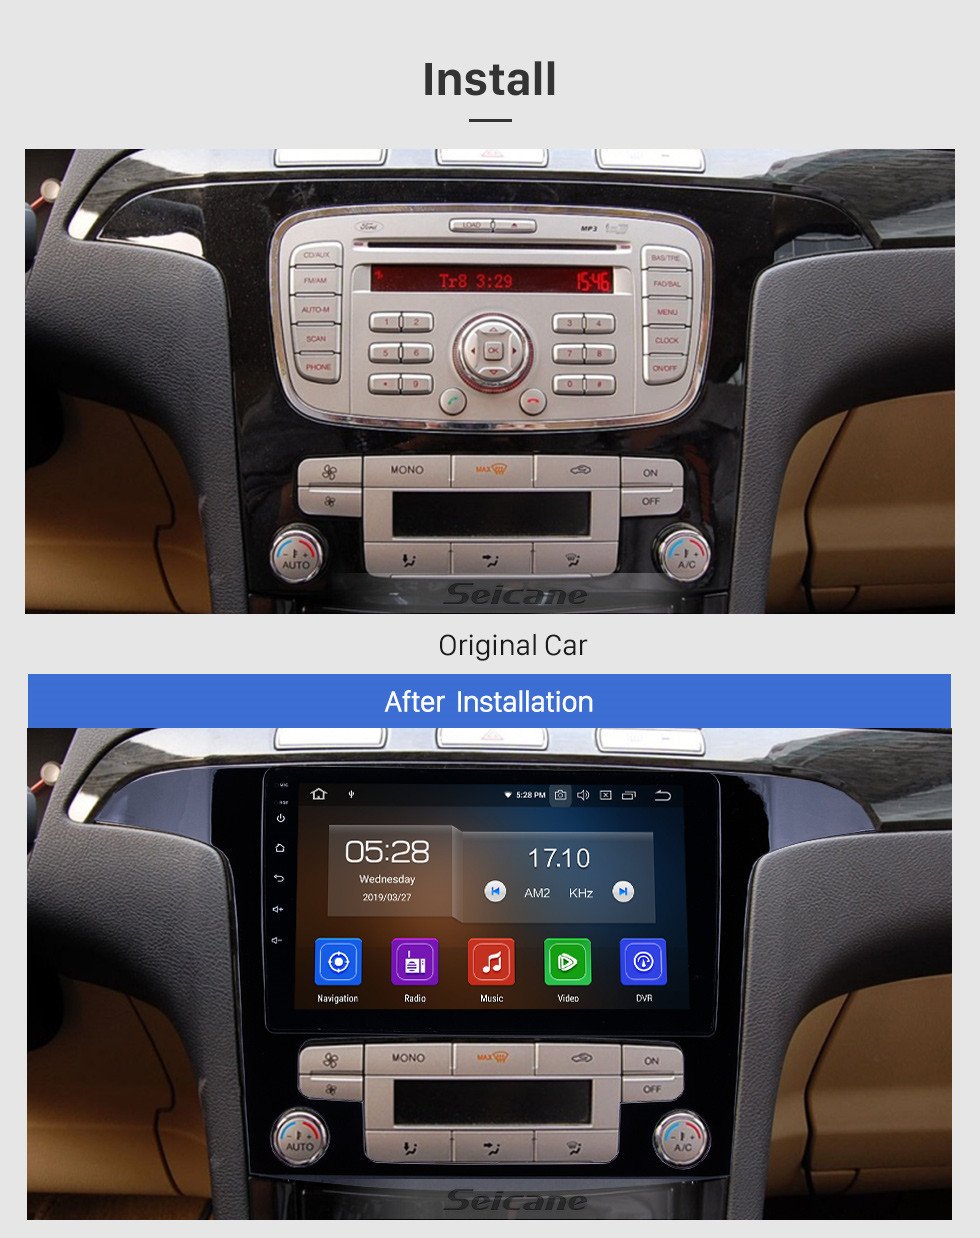 Seicane 2007-2008 Ford S-Max Auto A/C Android 9.0 9 inch GPS Navigation Radio Bluetooth HD Touchscreen USB Carplay support Digital TV